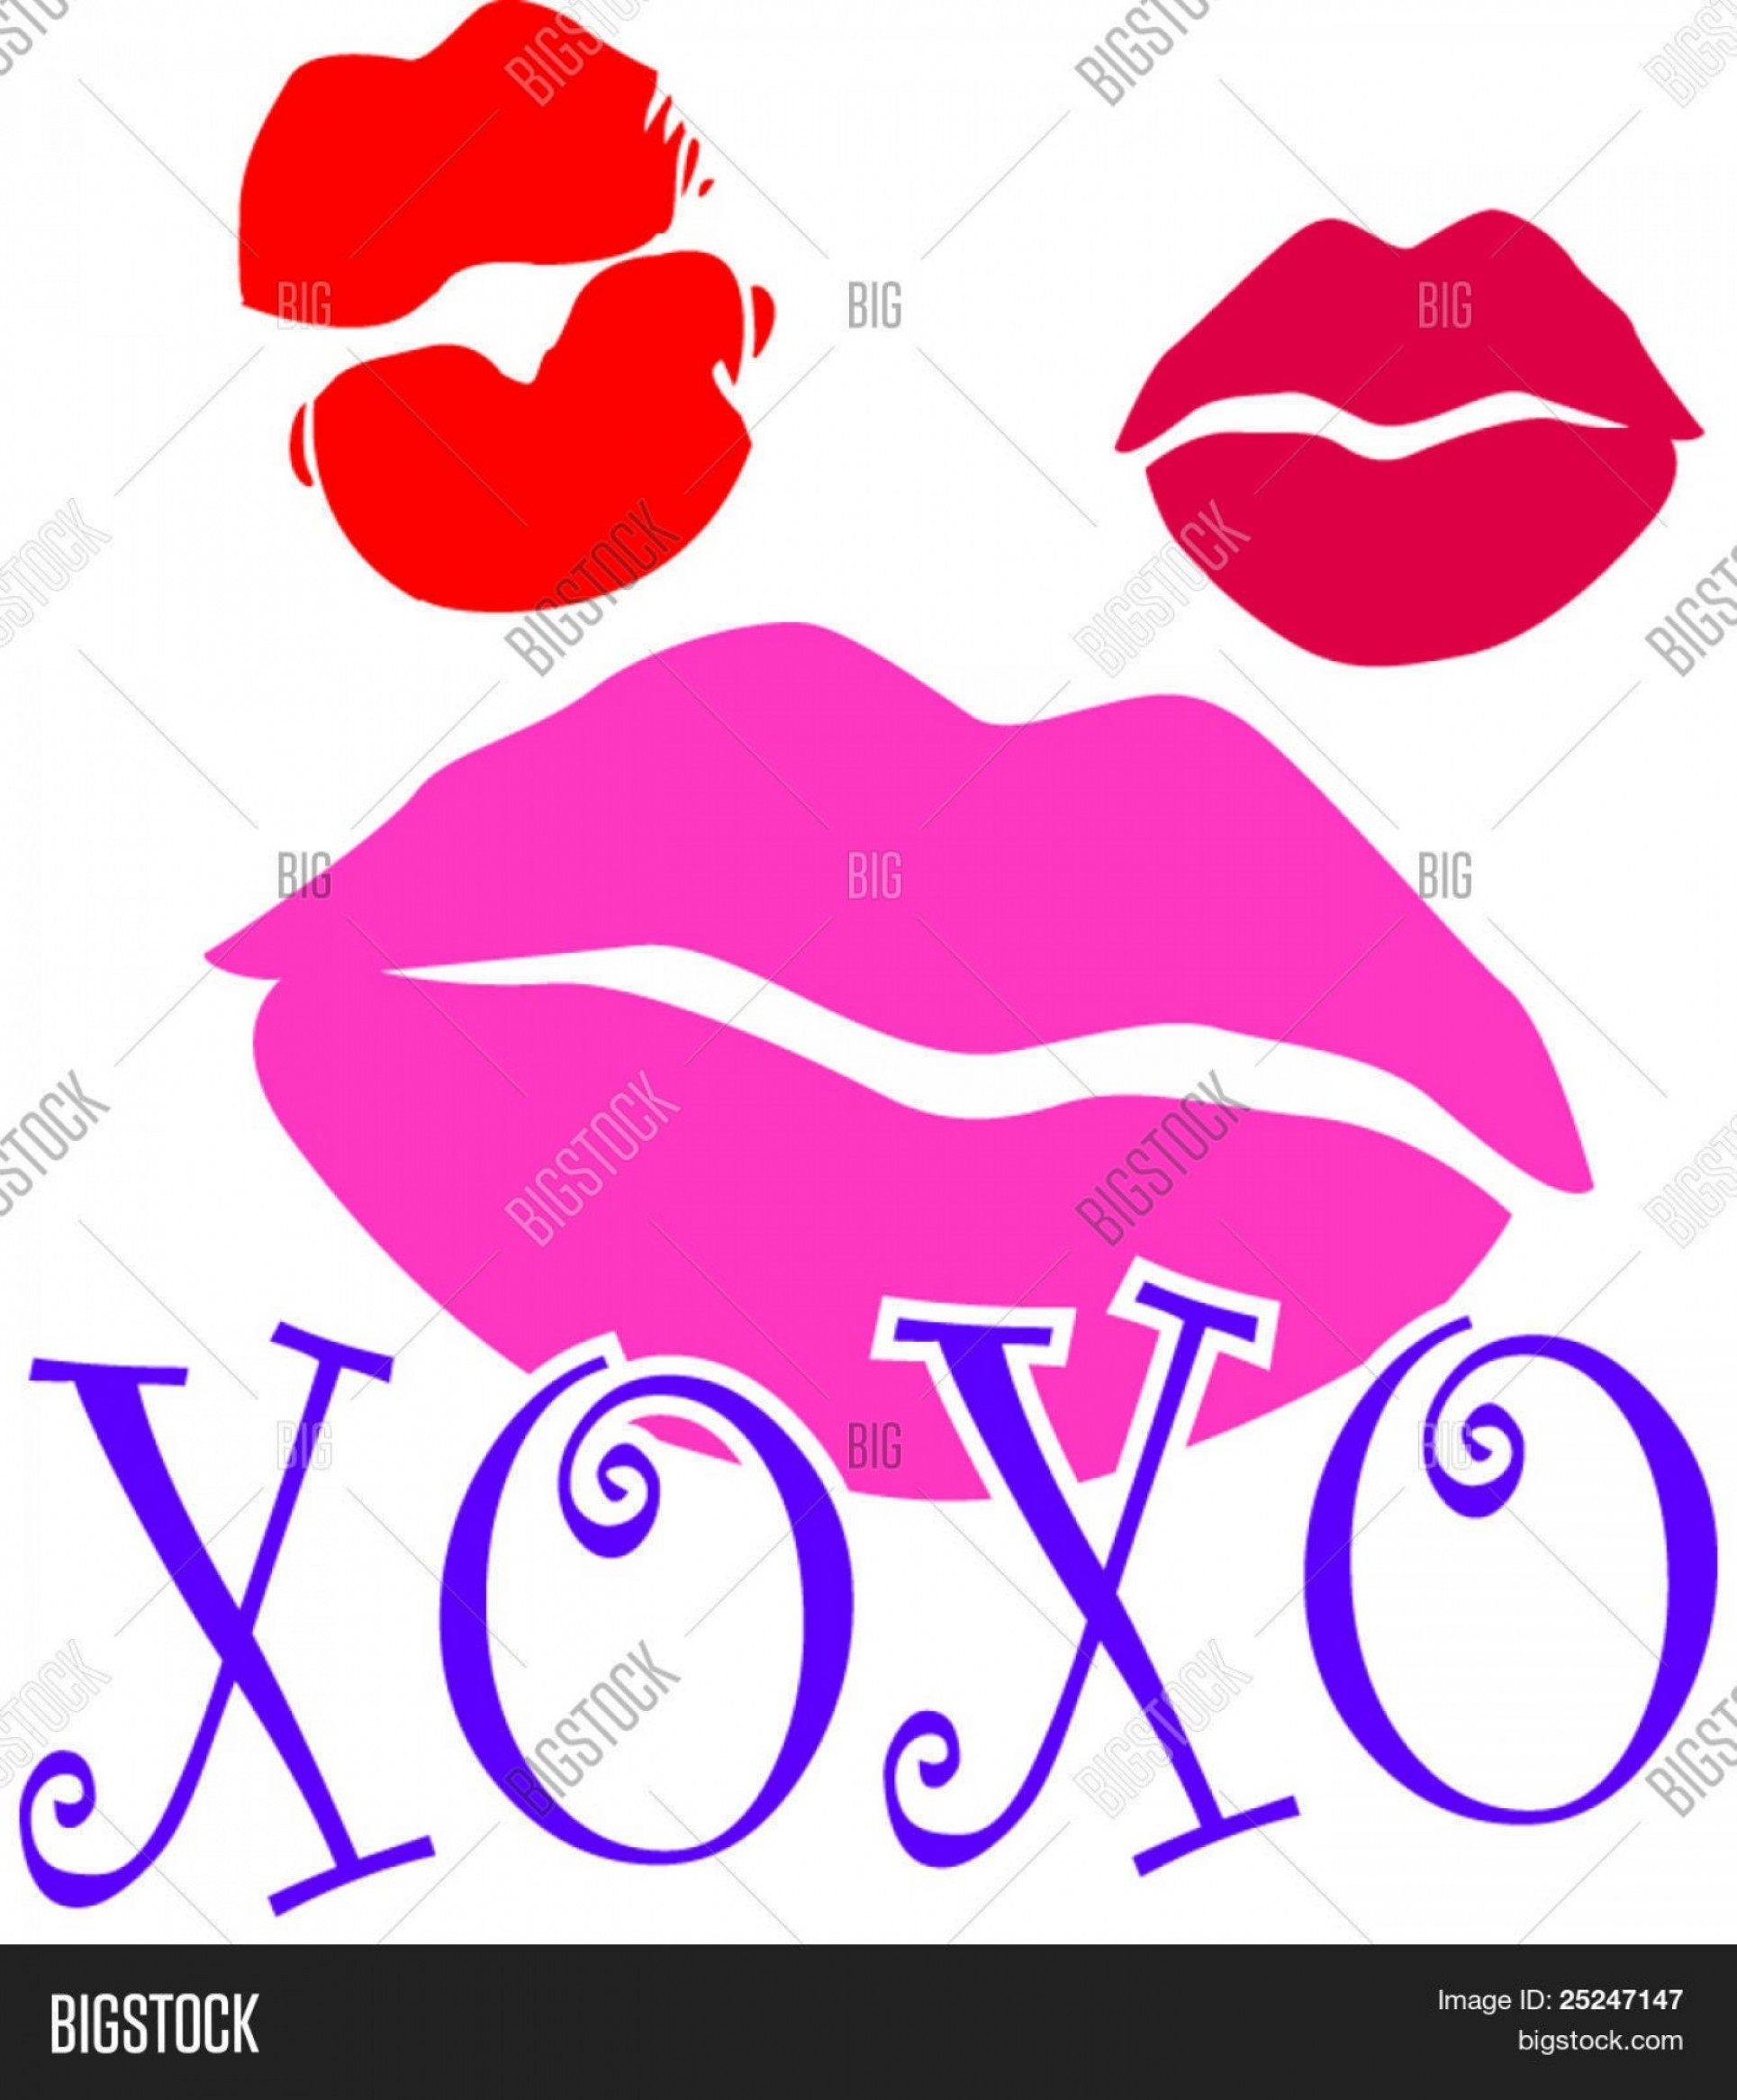 Kiss Clip Art Vector: Stock Vector Lipstick Kiss Marks With Xoxo Hugs And Kisses